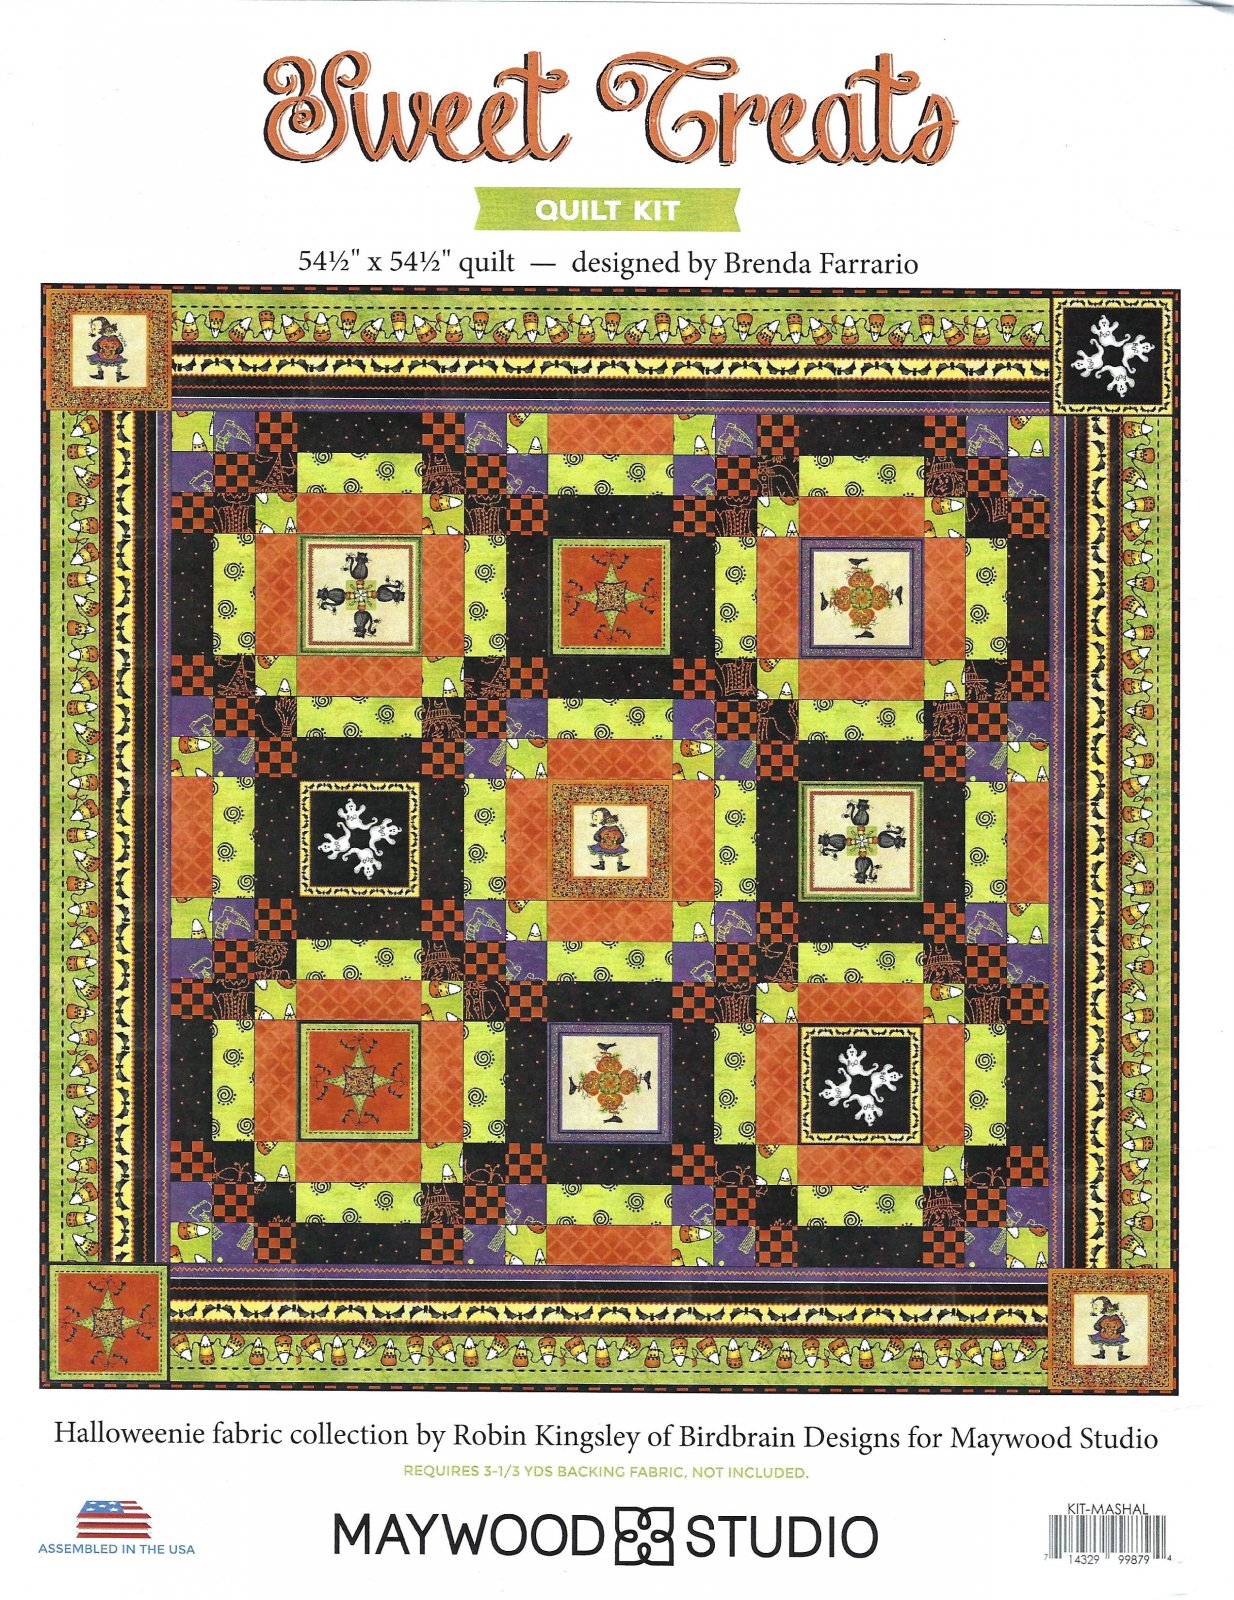 kit quilt beginners and easy quilting kits for fun boxcar treat tonga online